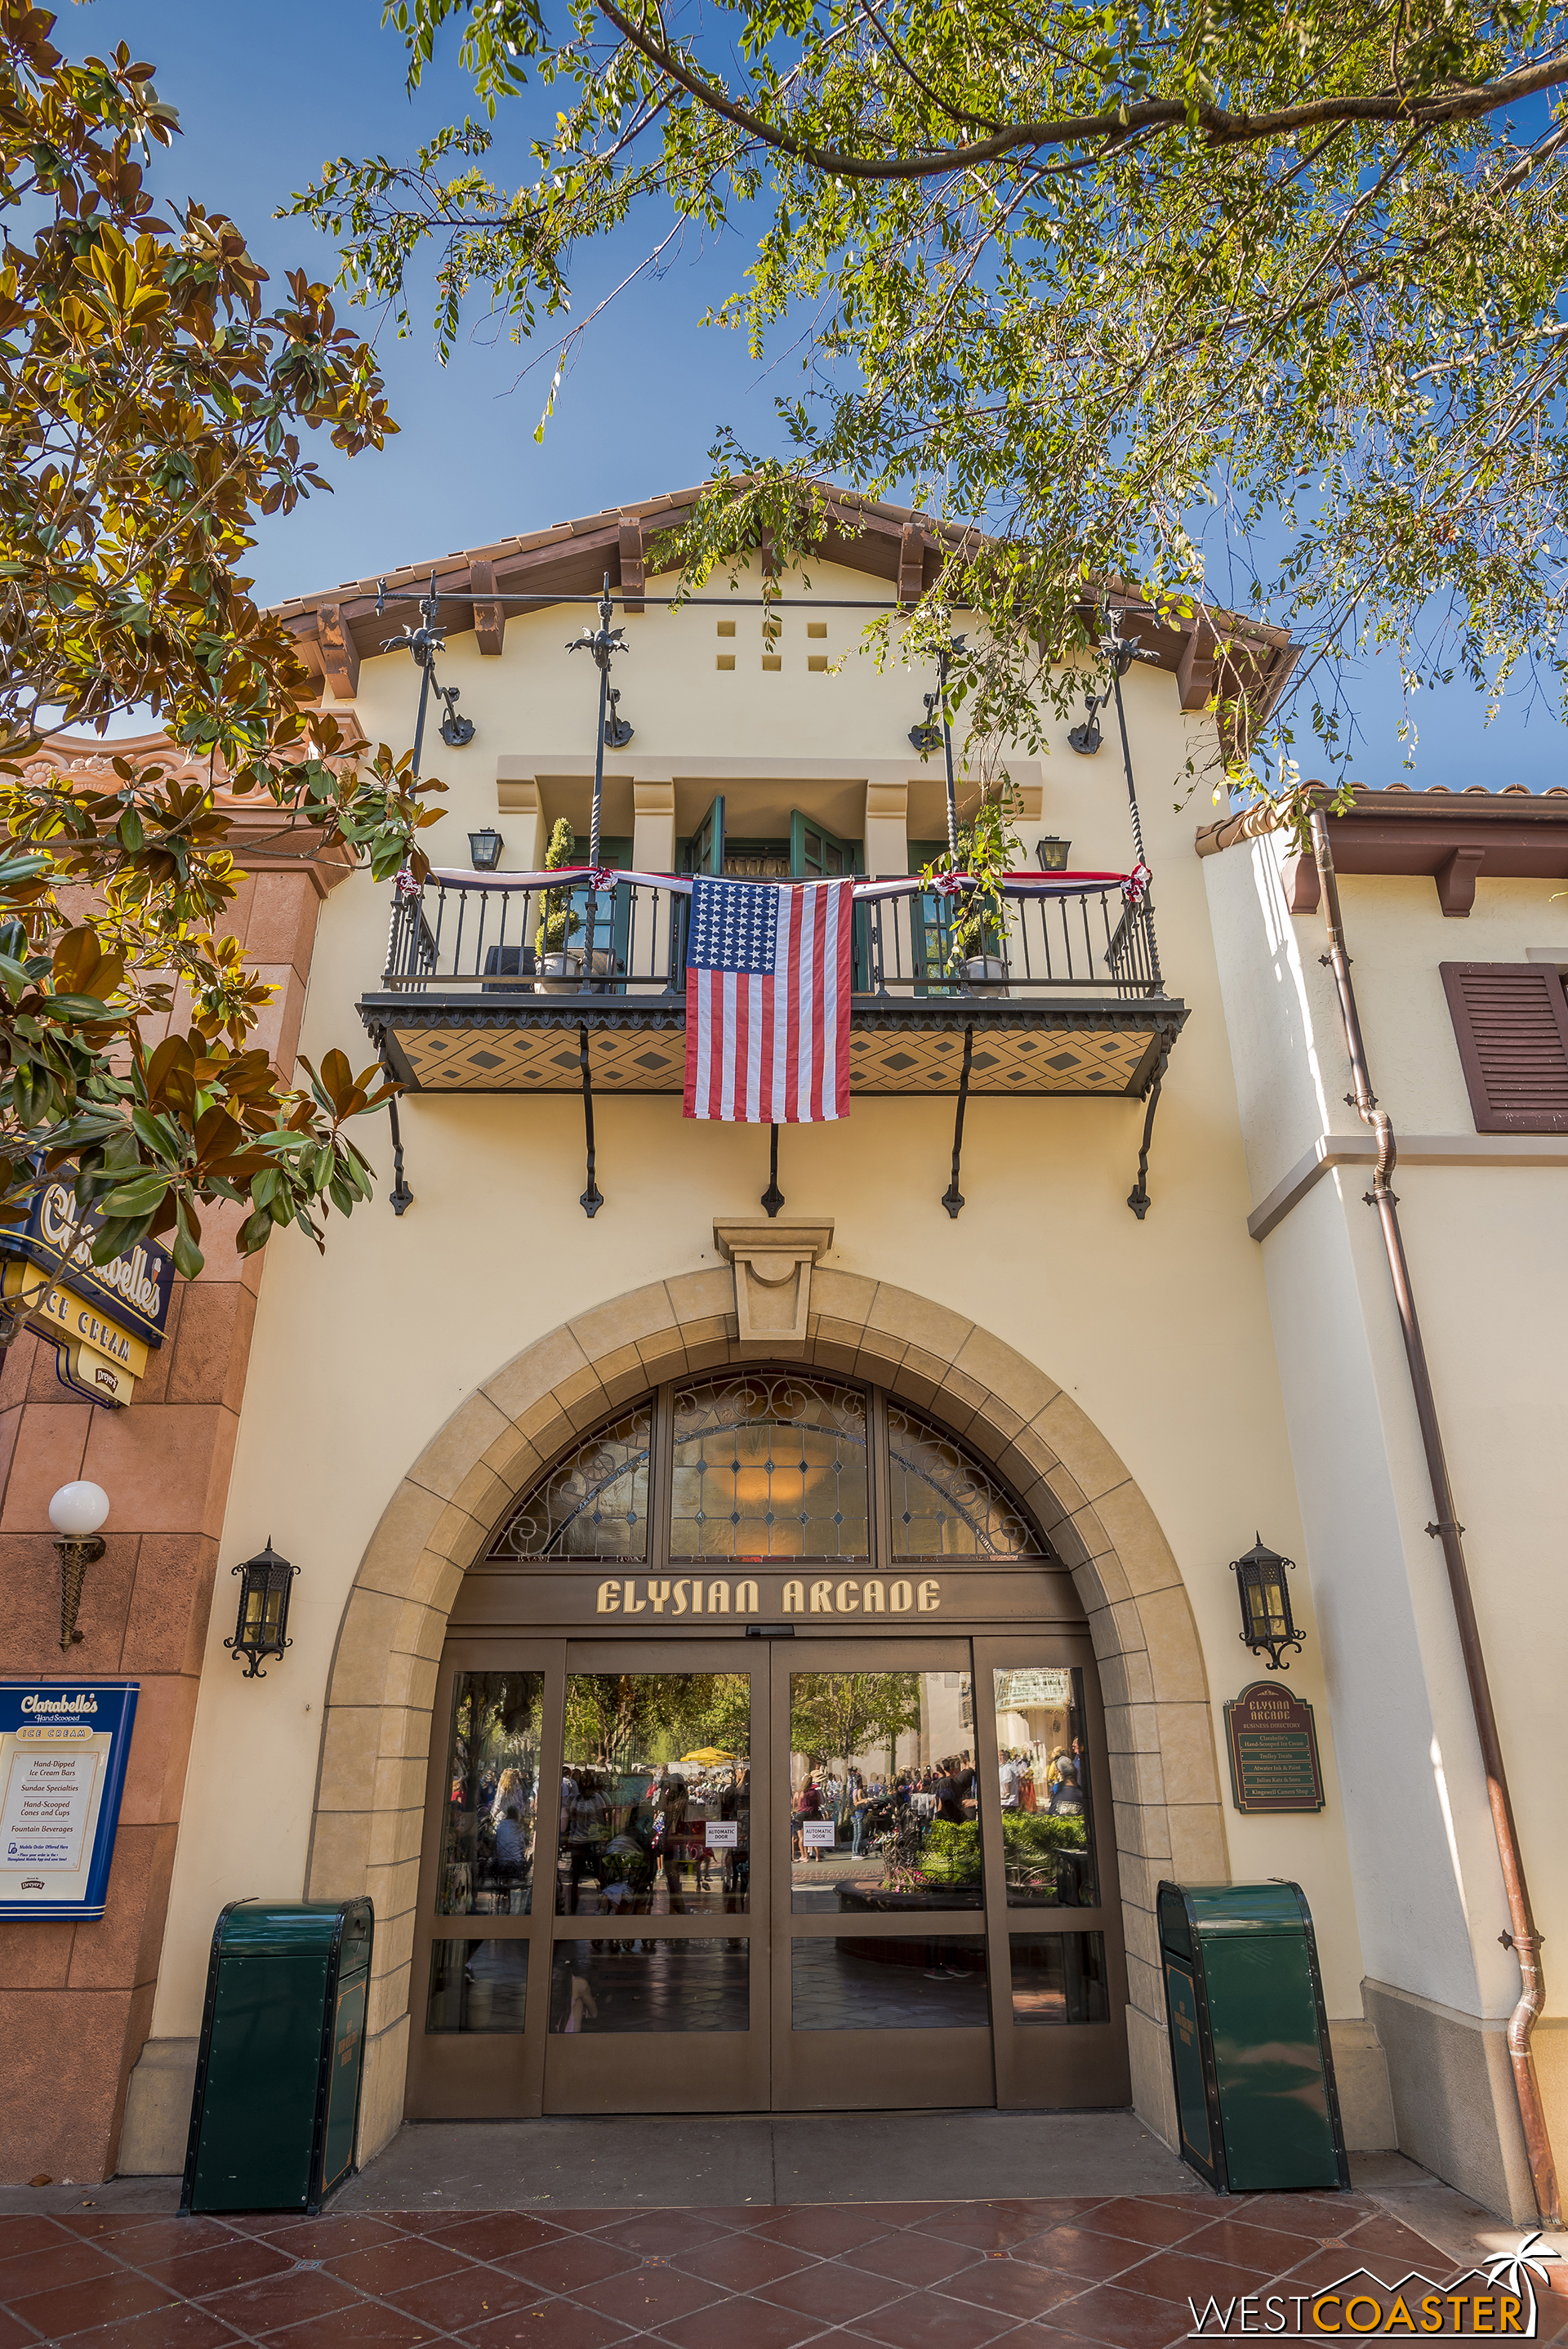 Buena Vista Street celebrates the country's heritage everywhere.